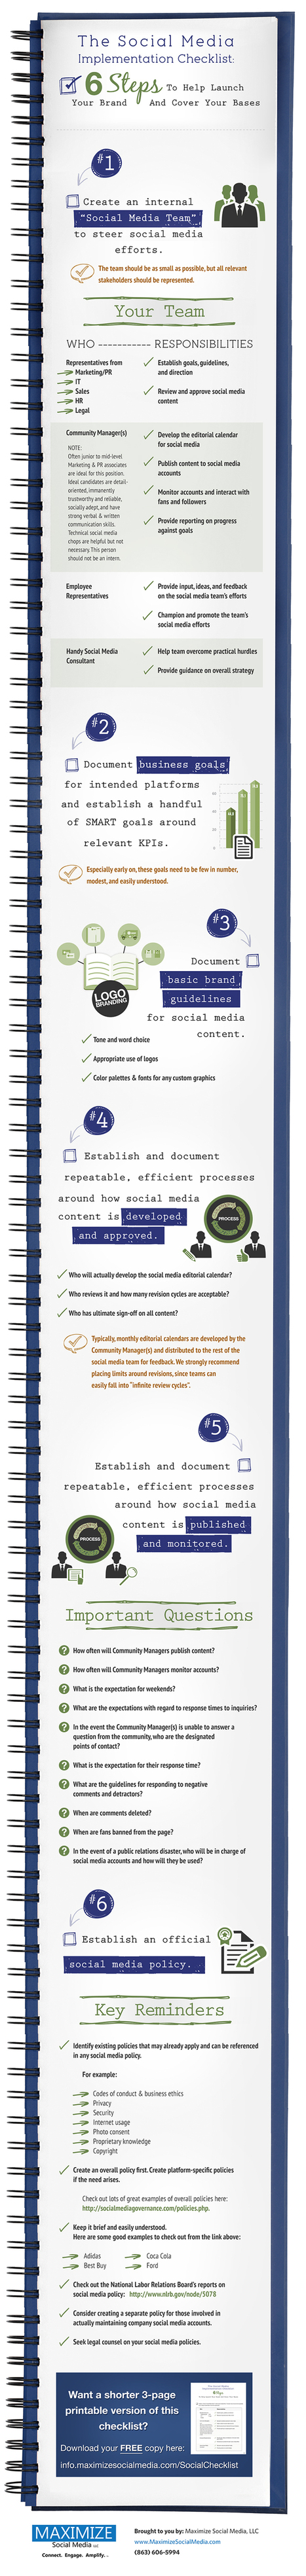 Social Media Implementation Checklist | Living with Diabetes | Scoop.it